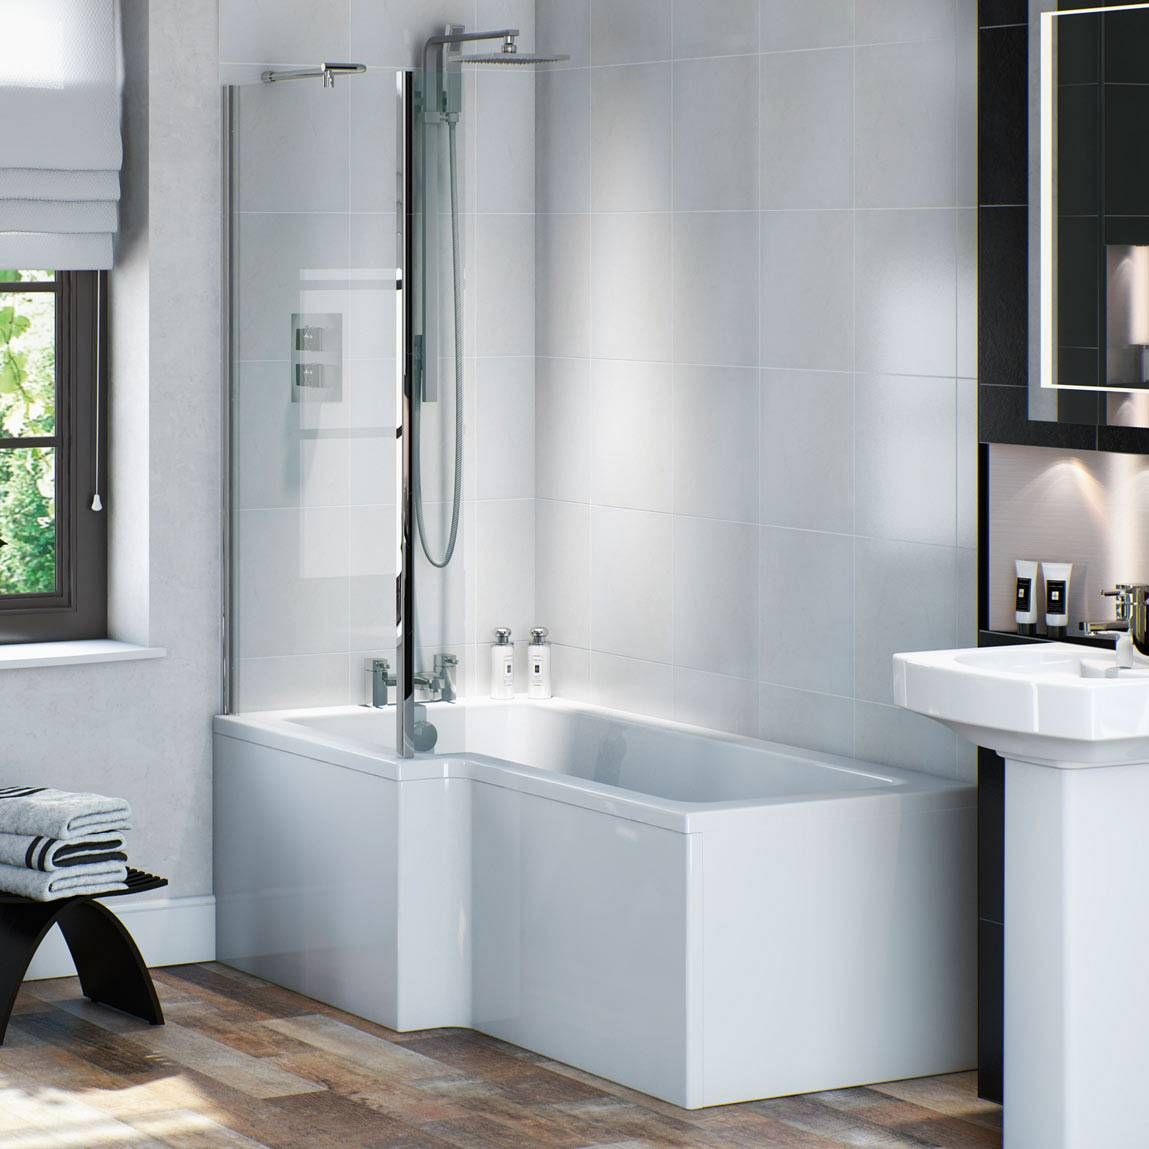 Modern bath and shower options | Bath, Victorian terrace and Girl ...